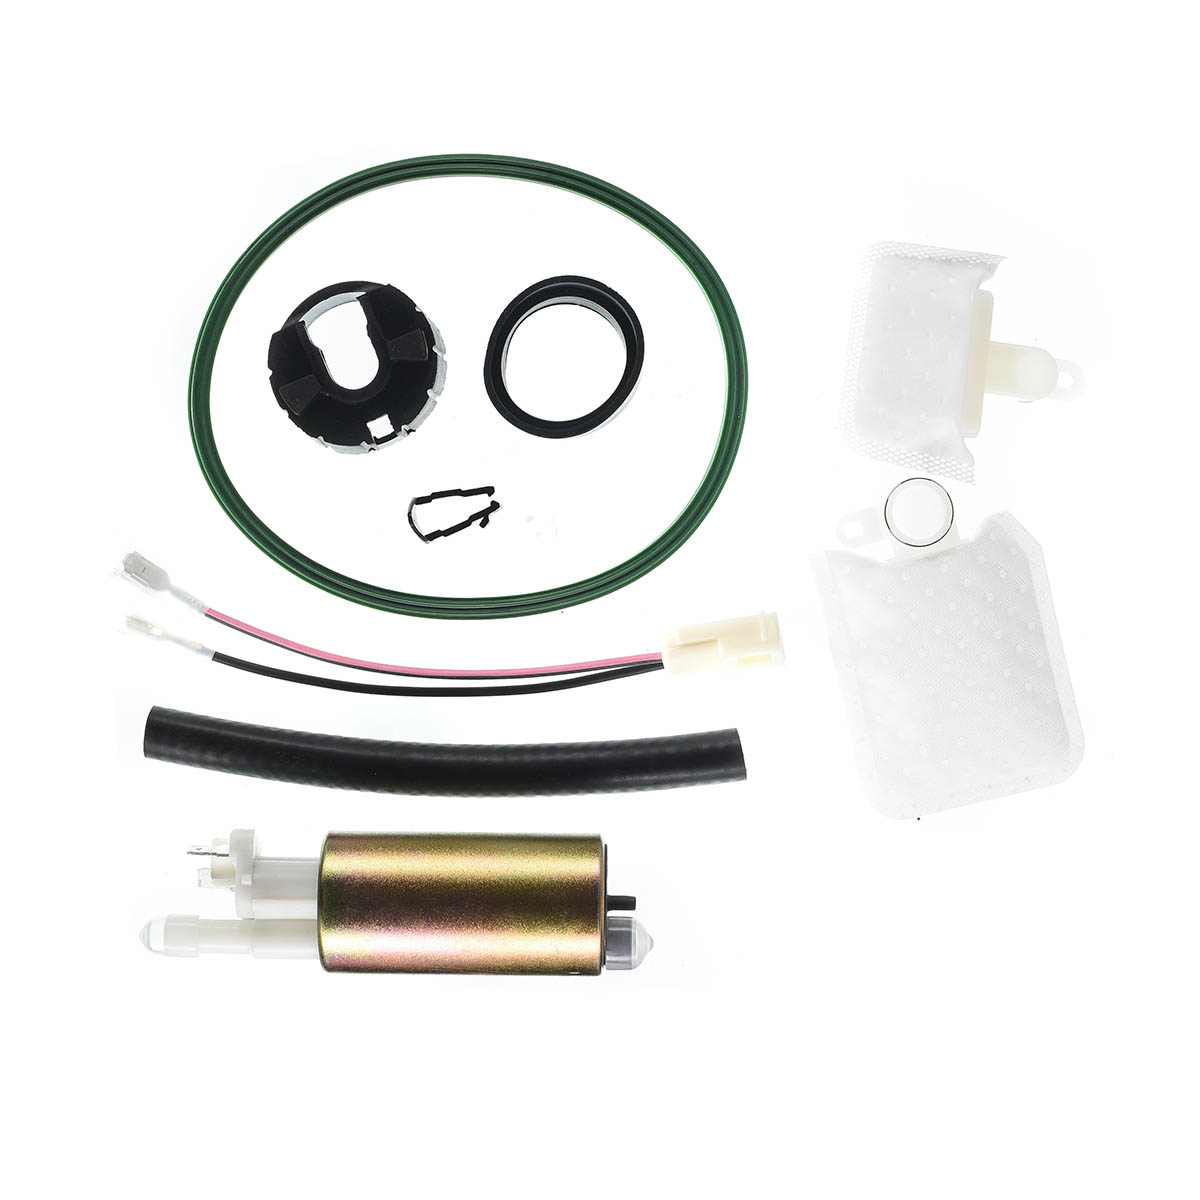 medium resolution of electric fuel pump for ford focus zx3 ztw zts svt base se lx 2000 2001 2002 i4 2 0l ys4z9h307ea ys4z9h307bb e2448 in fuel pumps from automobiles